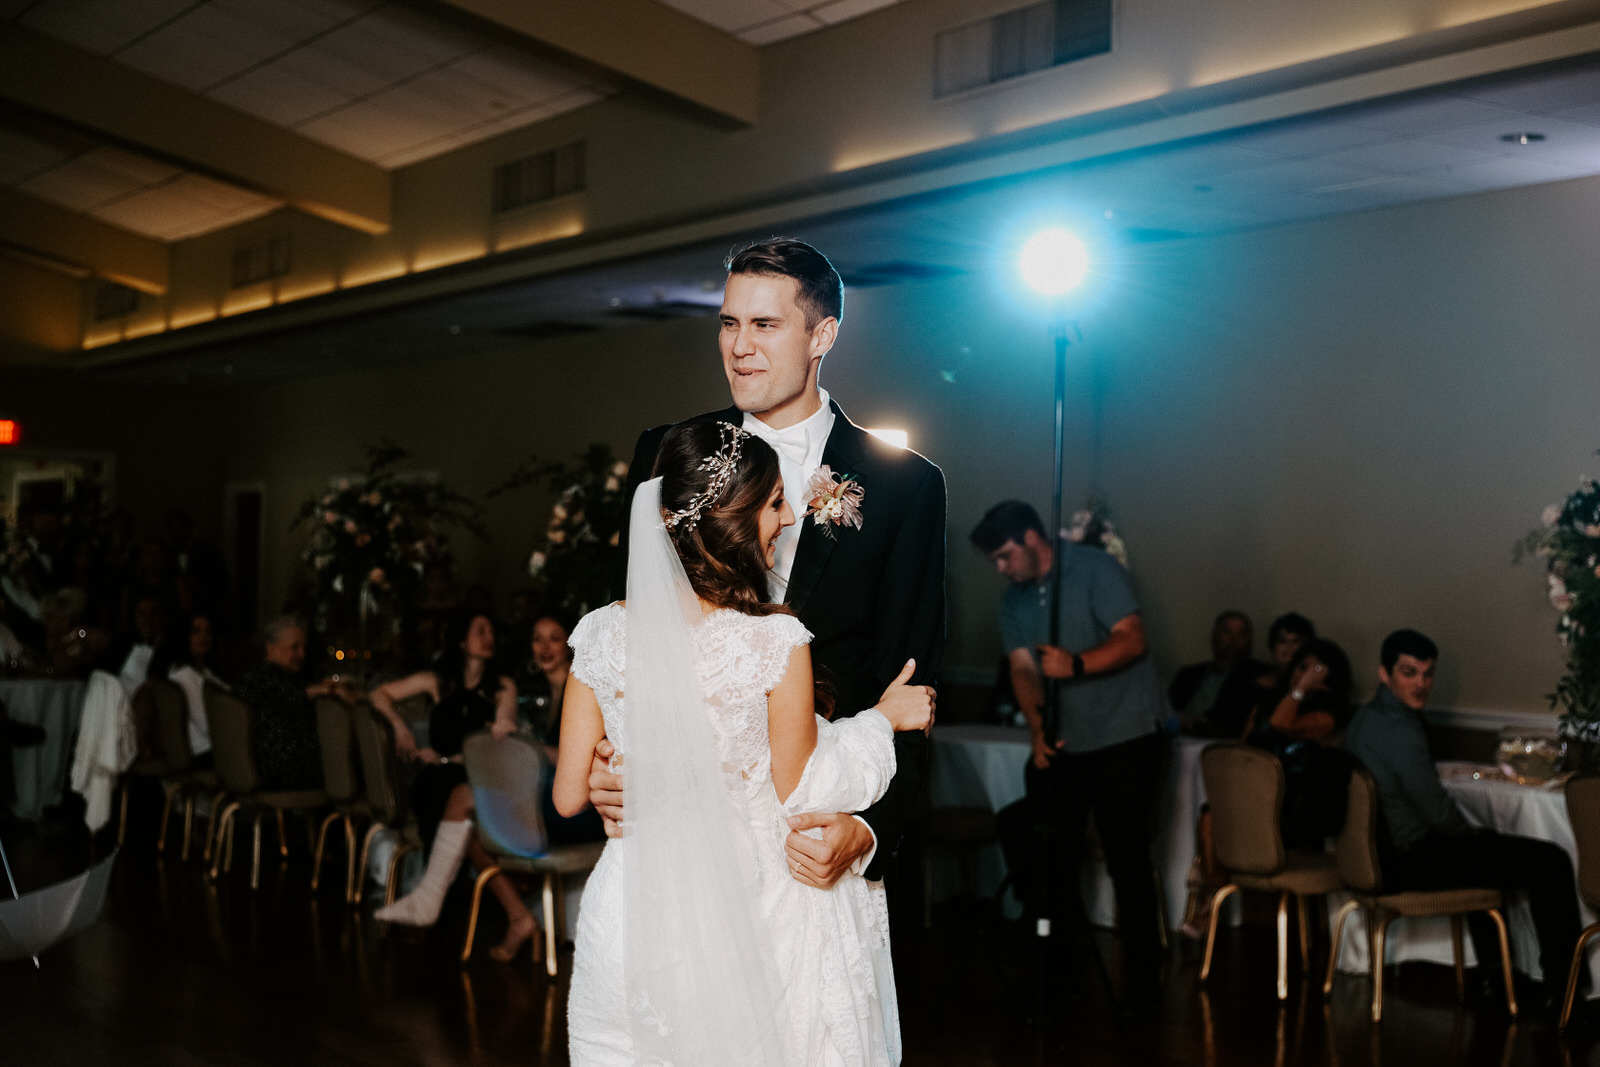 weddings-should-you-have-first-look-photography-videography7.jpg